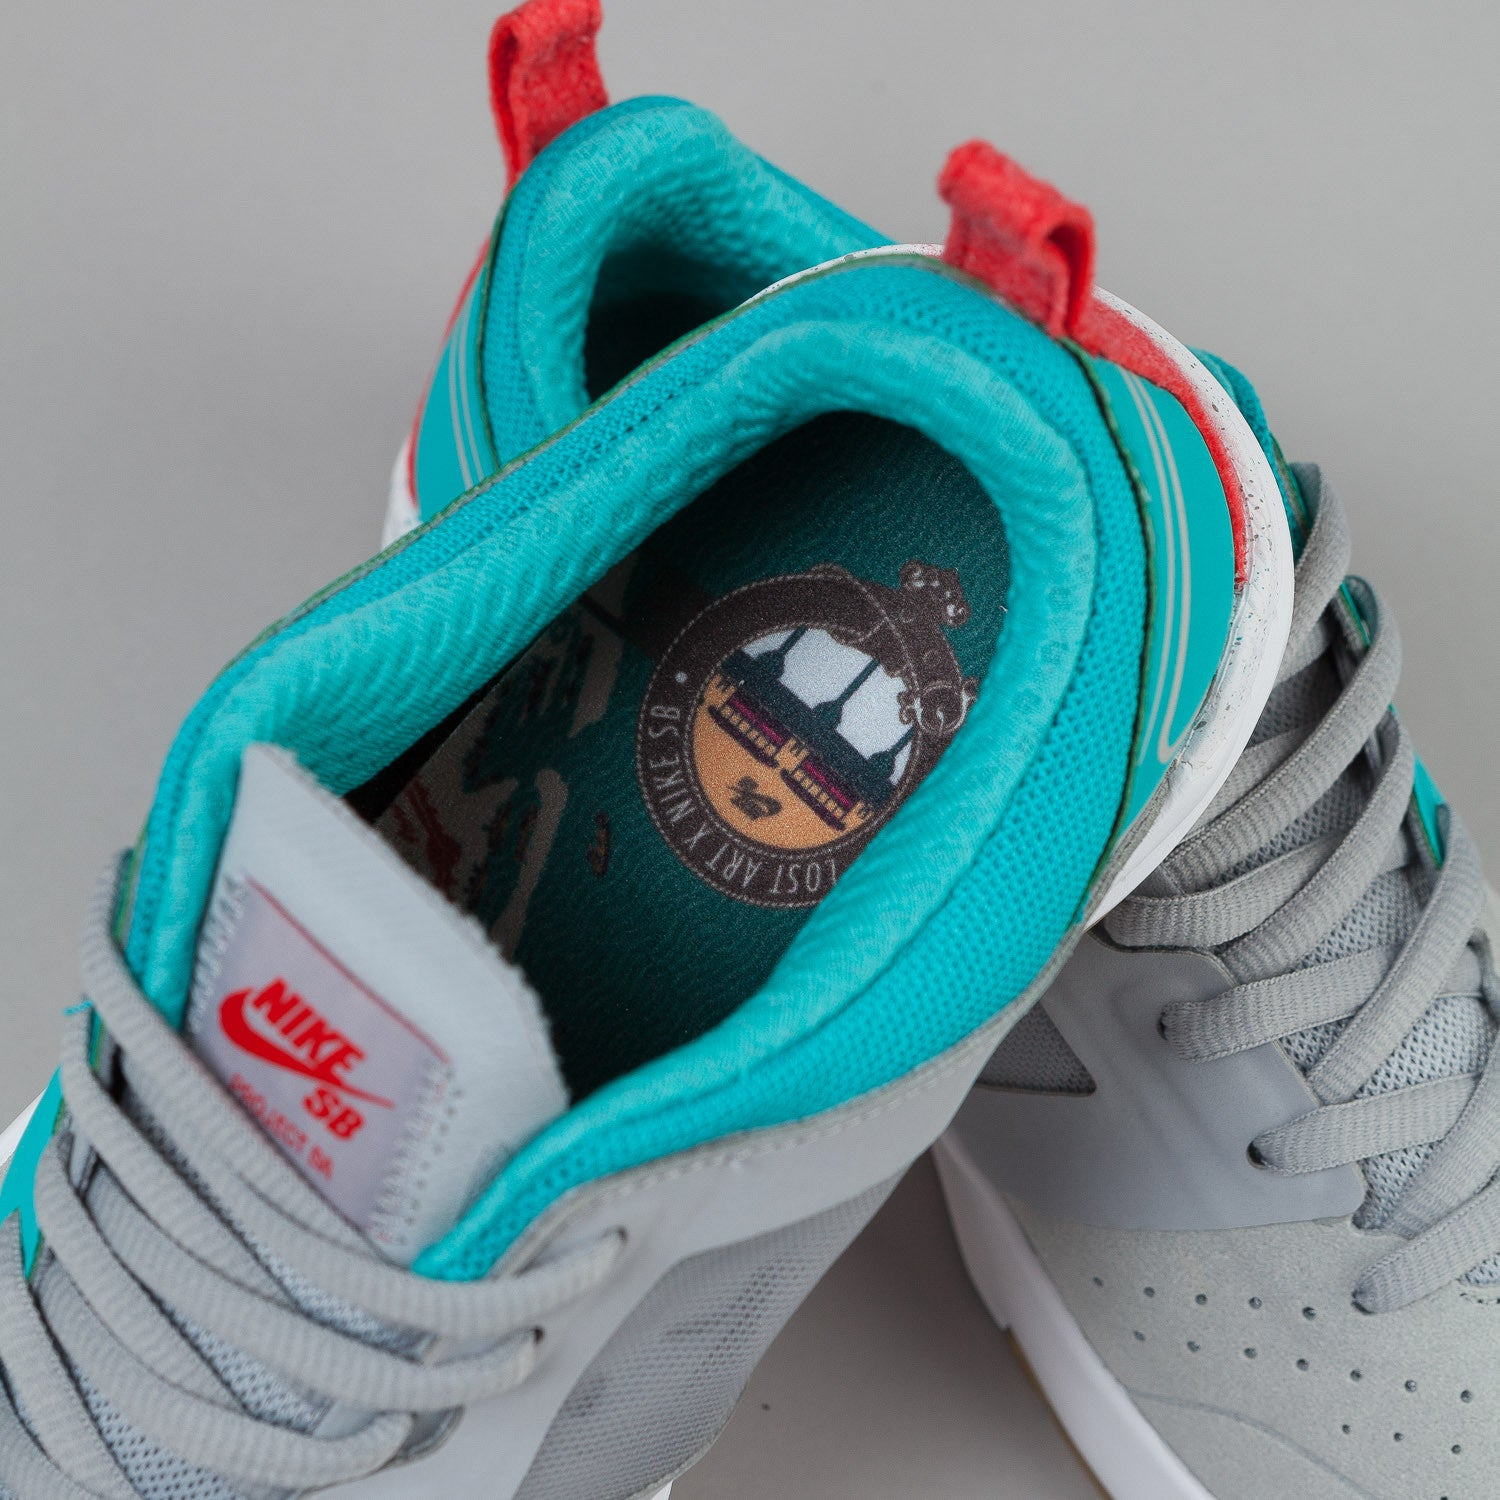 Nike SB Project BA Premium Shoes 'Lost Art' - Wolf Grey / Metallic Silver / Dusty Cactus